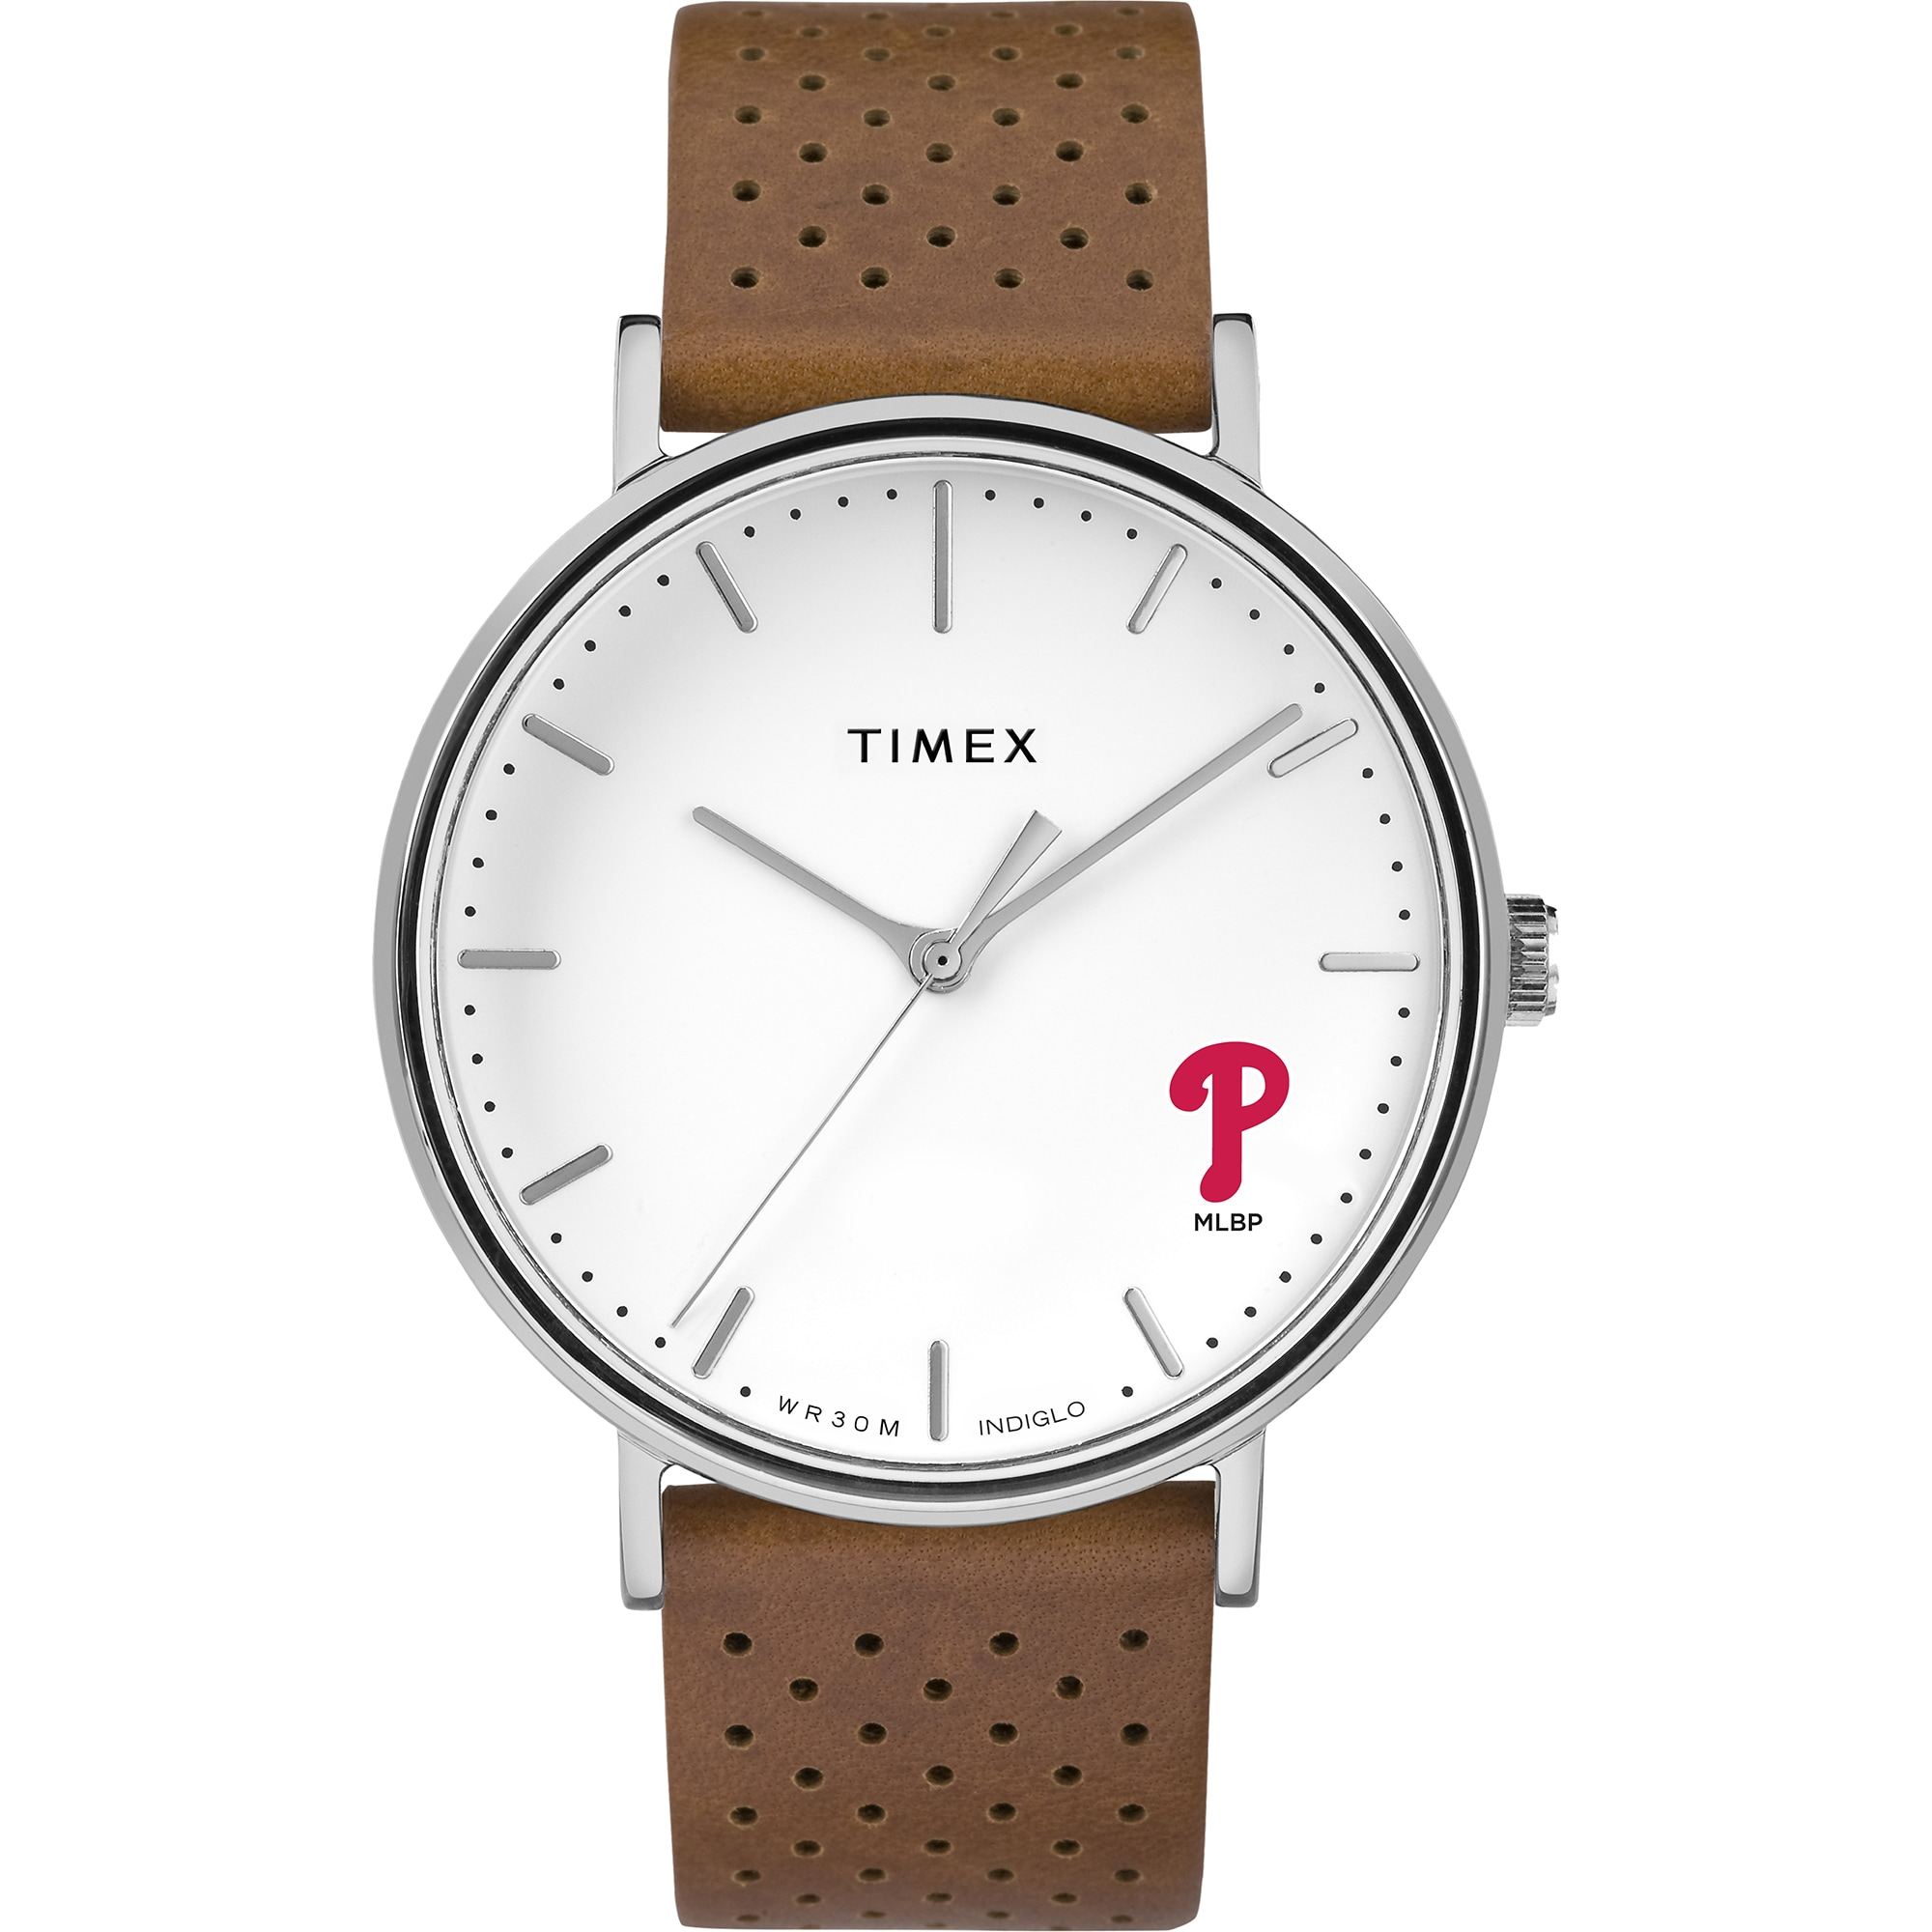 Philadelphia Phillies Timex Bright Whites Tribute Collection Watch